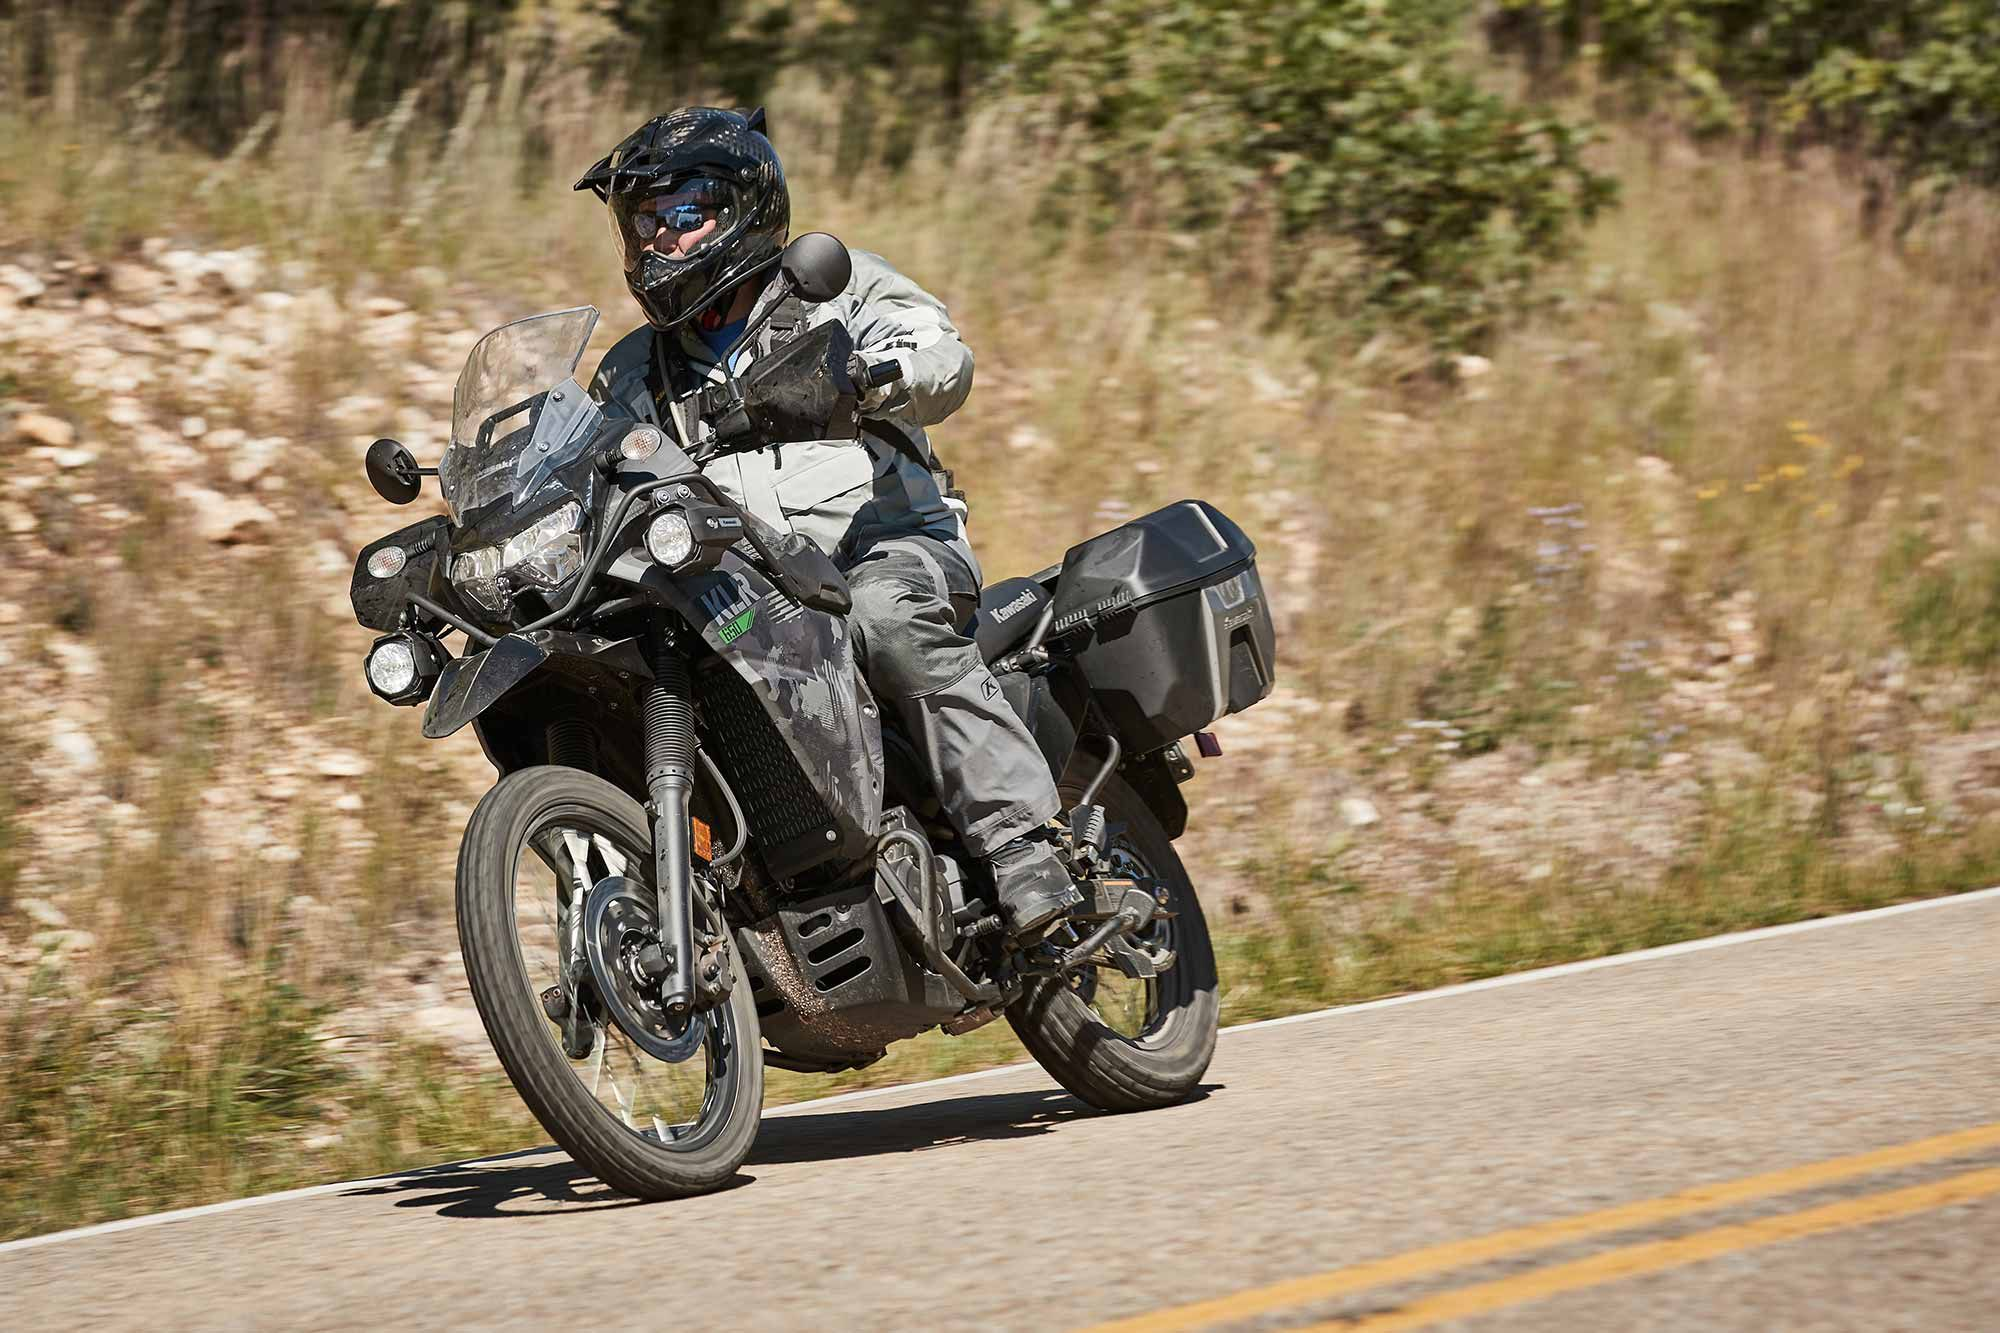 Kawasaki's KLR650 gets fuel injection along with a host of other updates for 2022.